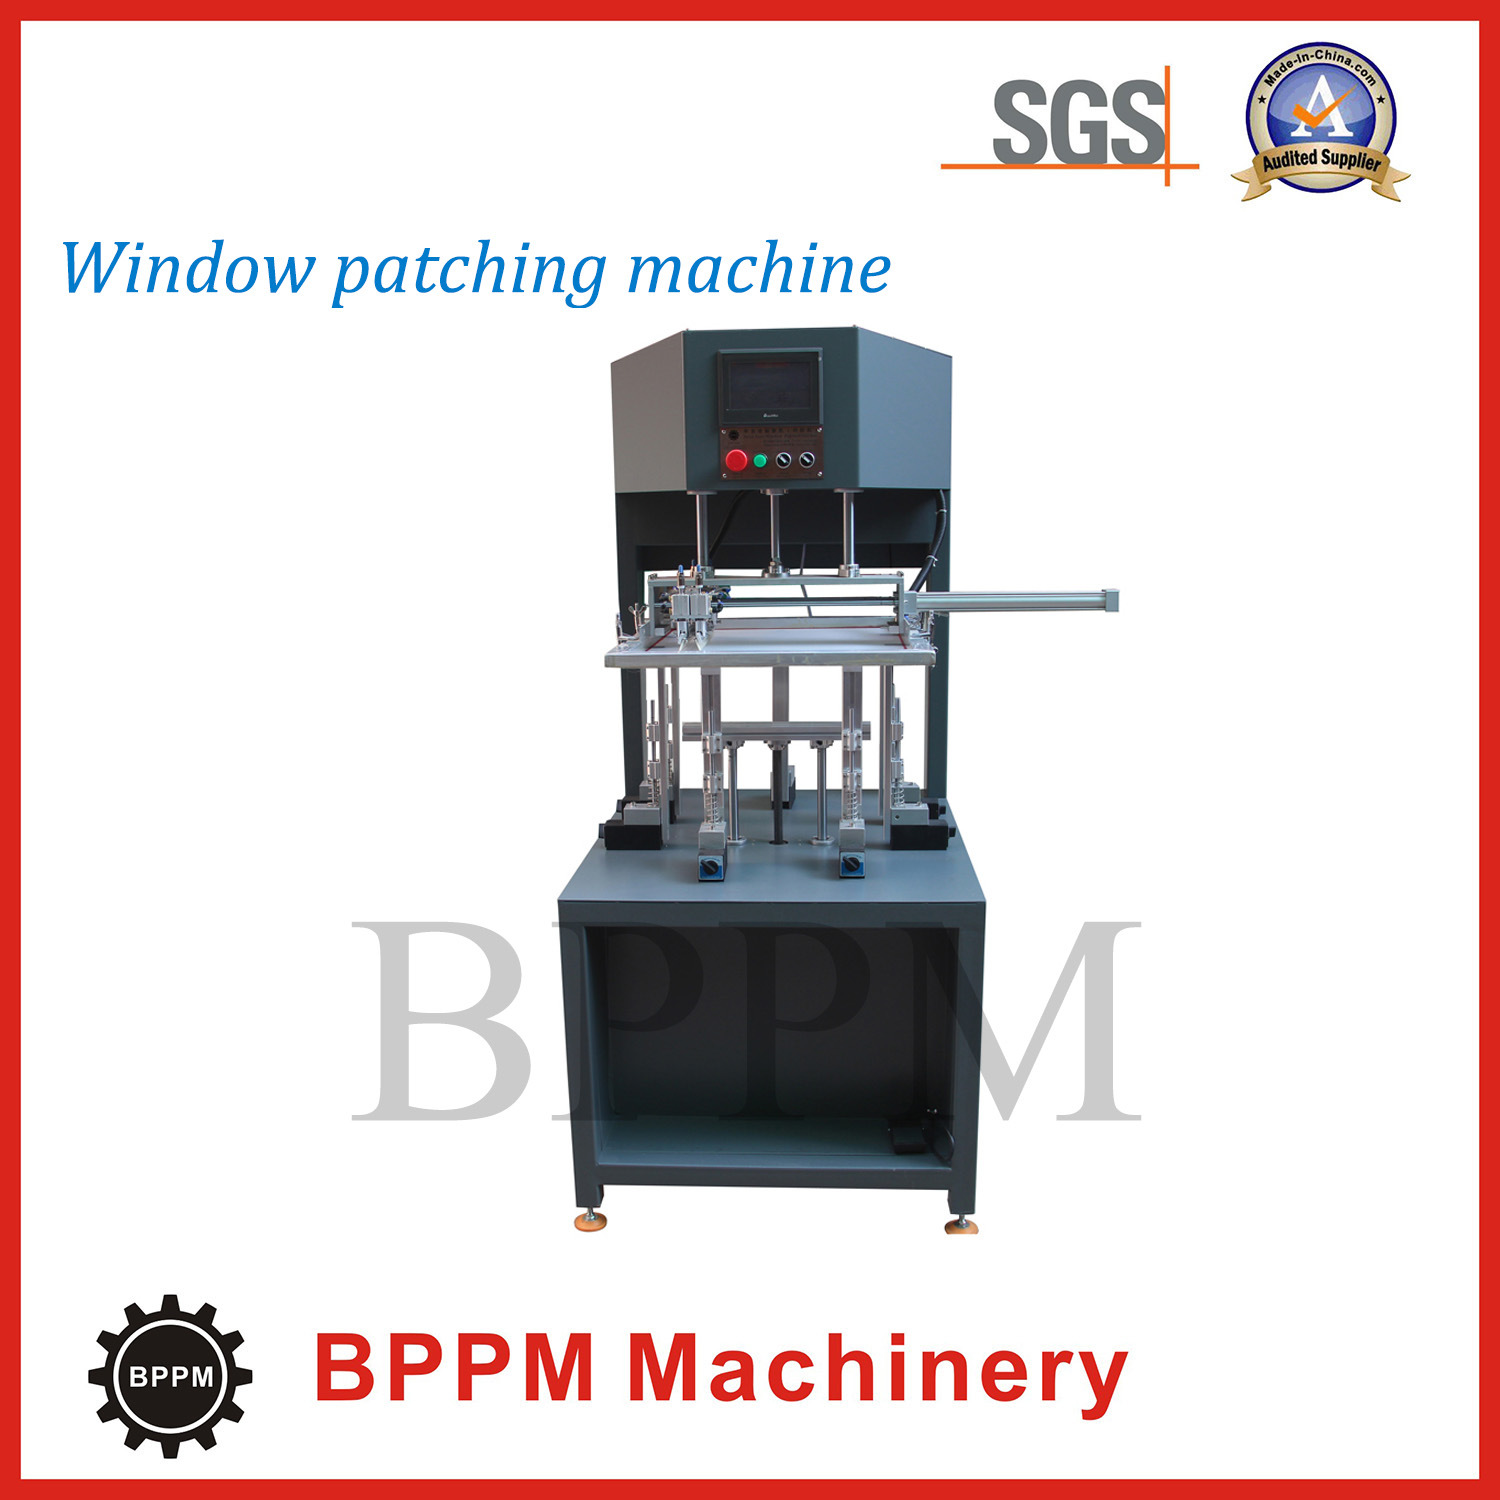 Carton Box Window Patching Machine, Window Pasting Machine